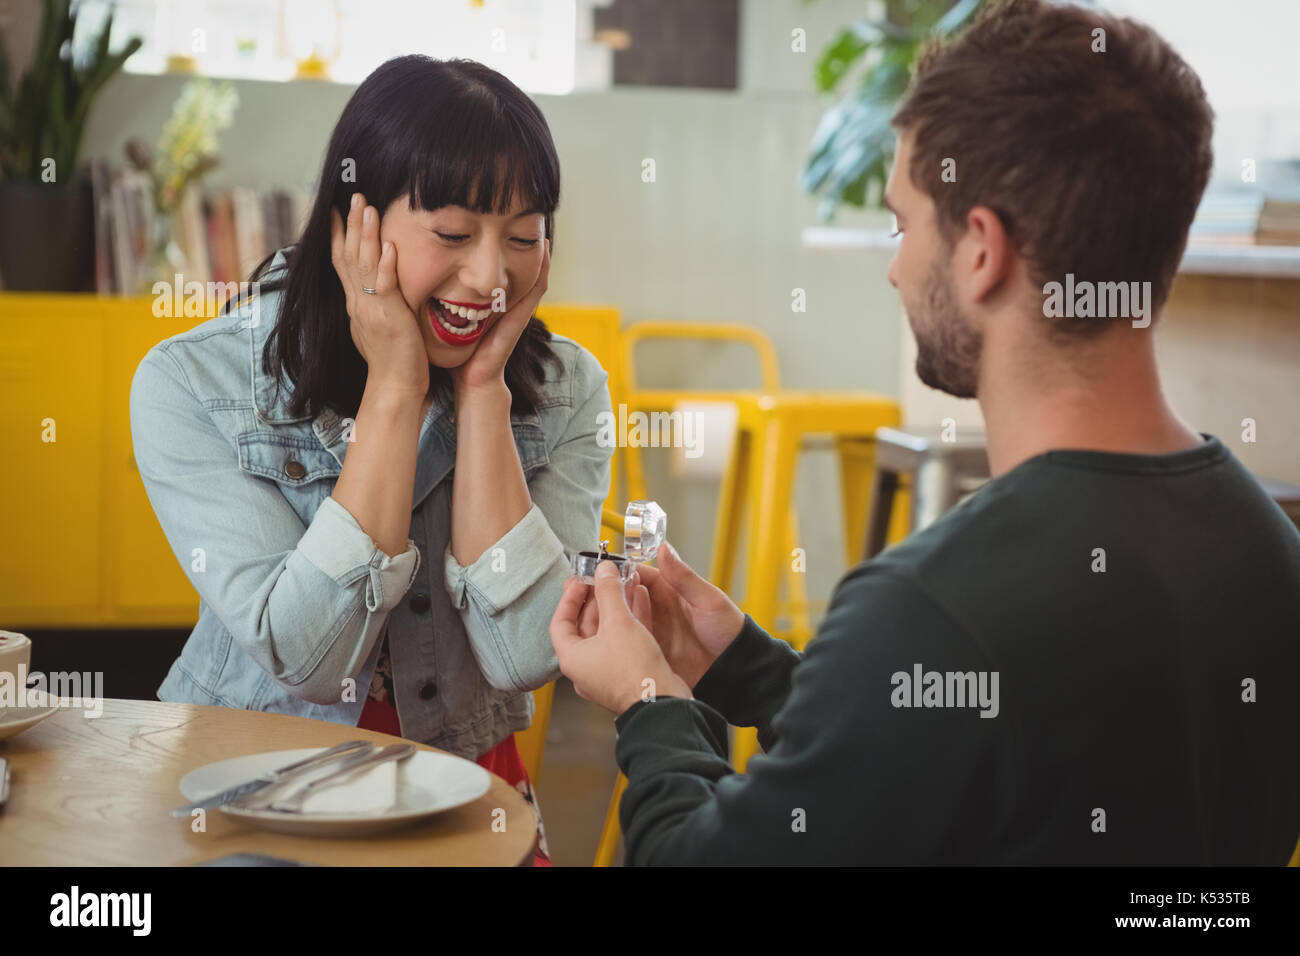 Young man gifting ring to shocked happy woman in cafe - Stock Image